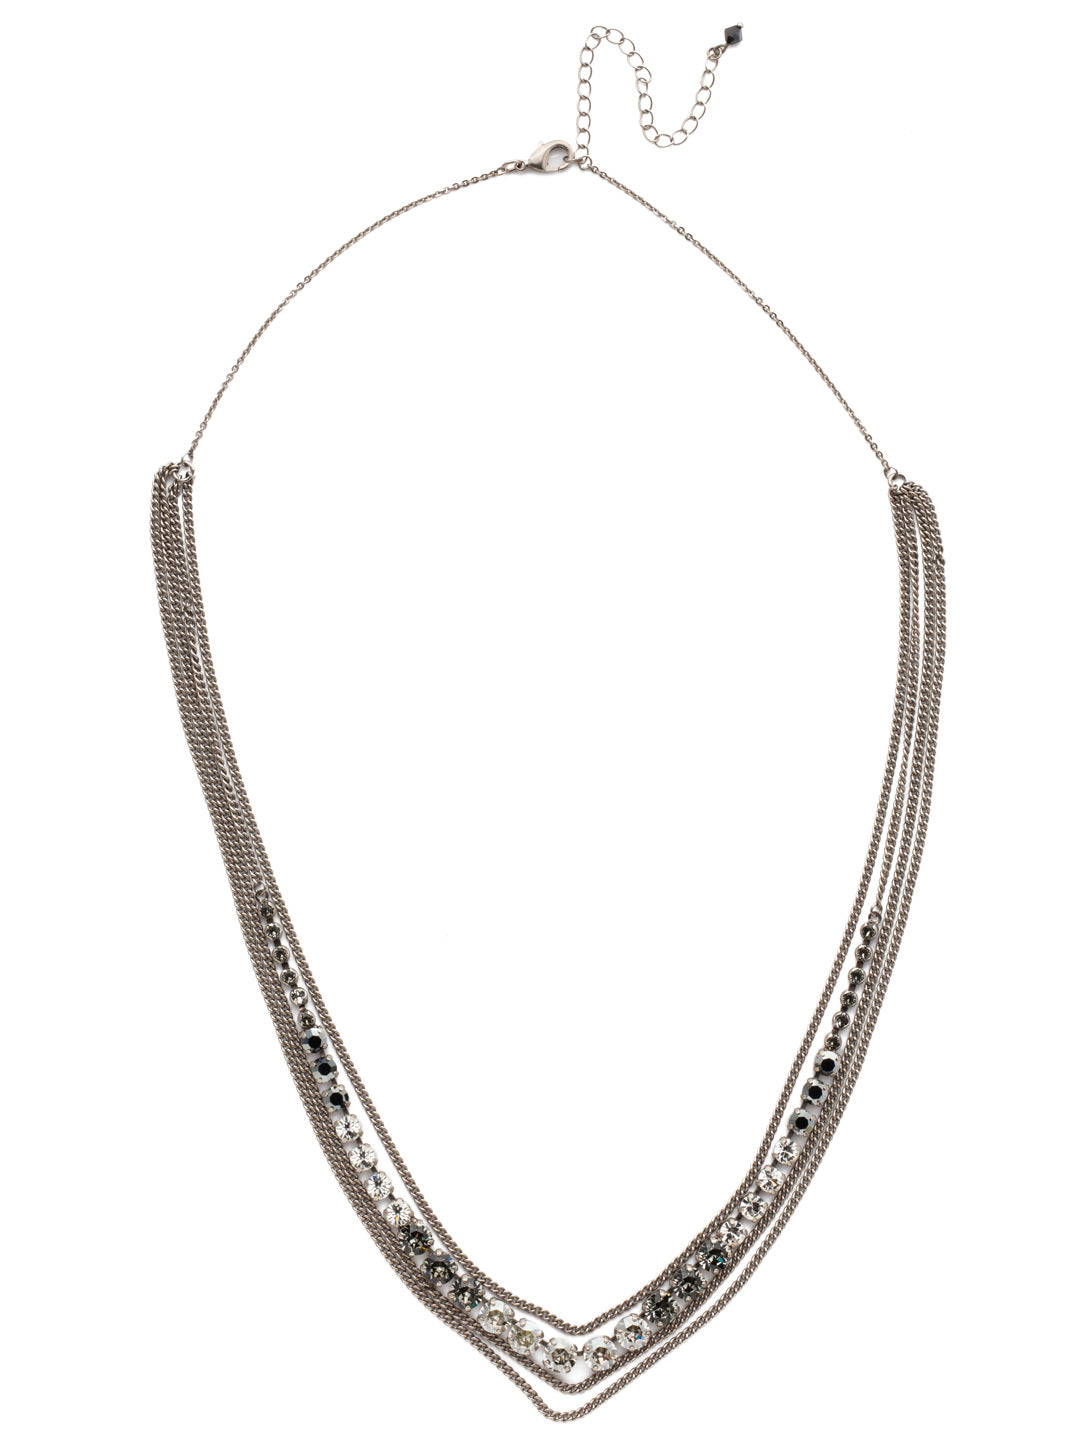 Layer It On Multi-Strand Layered Necklace - NCR73ASCRO